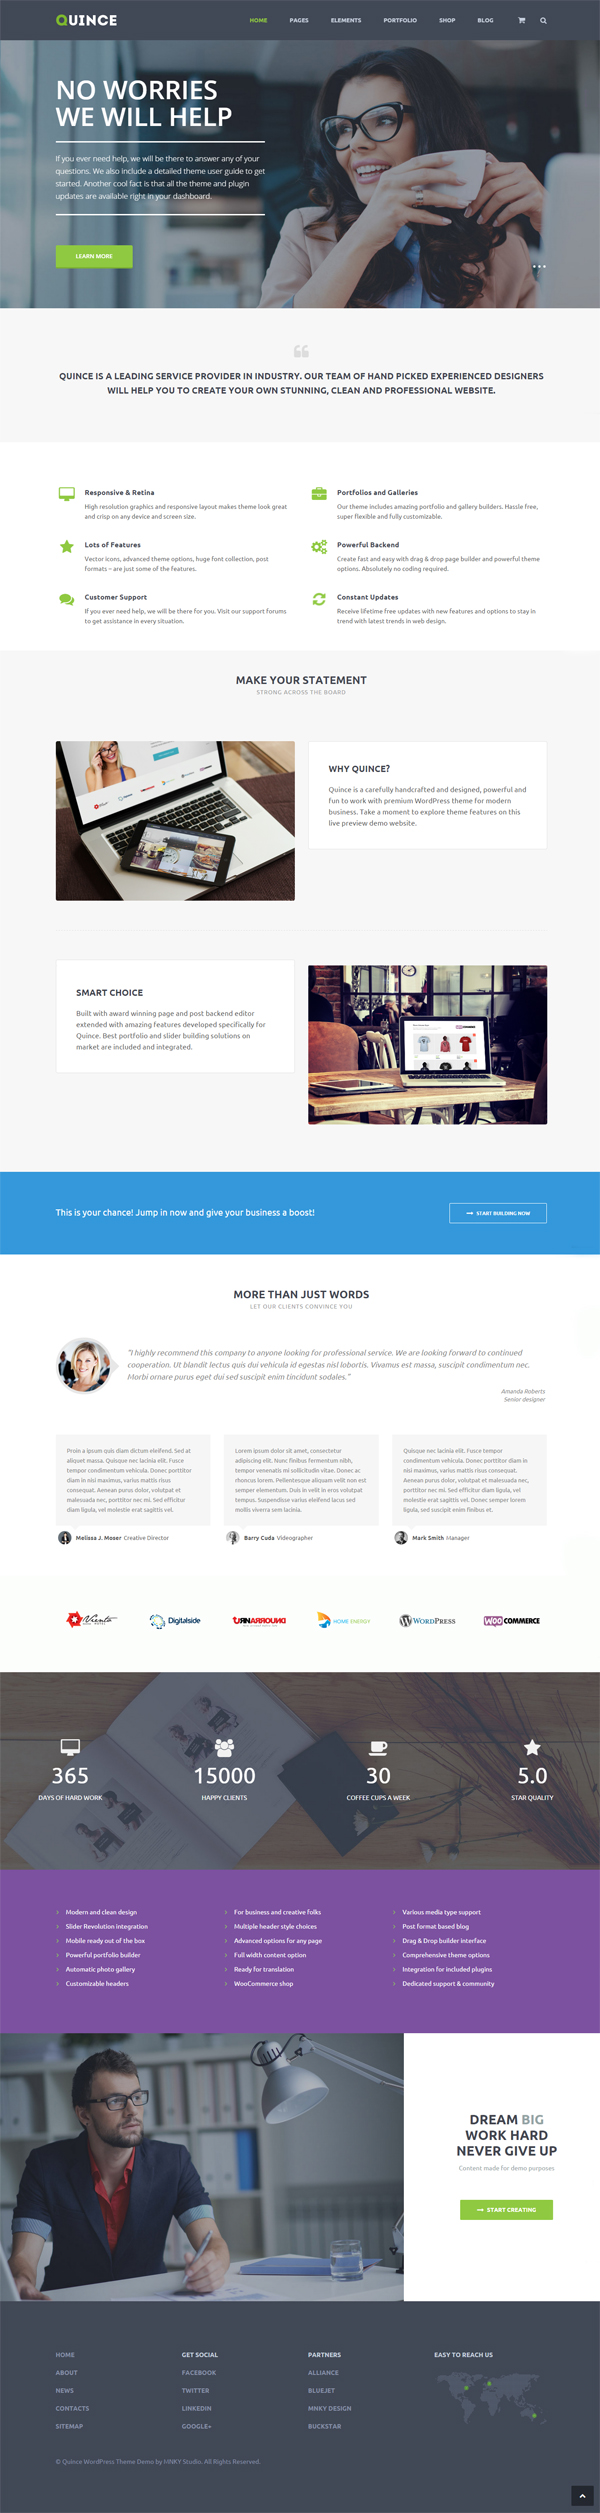 Quince - Modern Business Theme